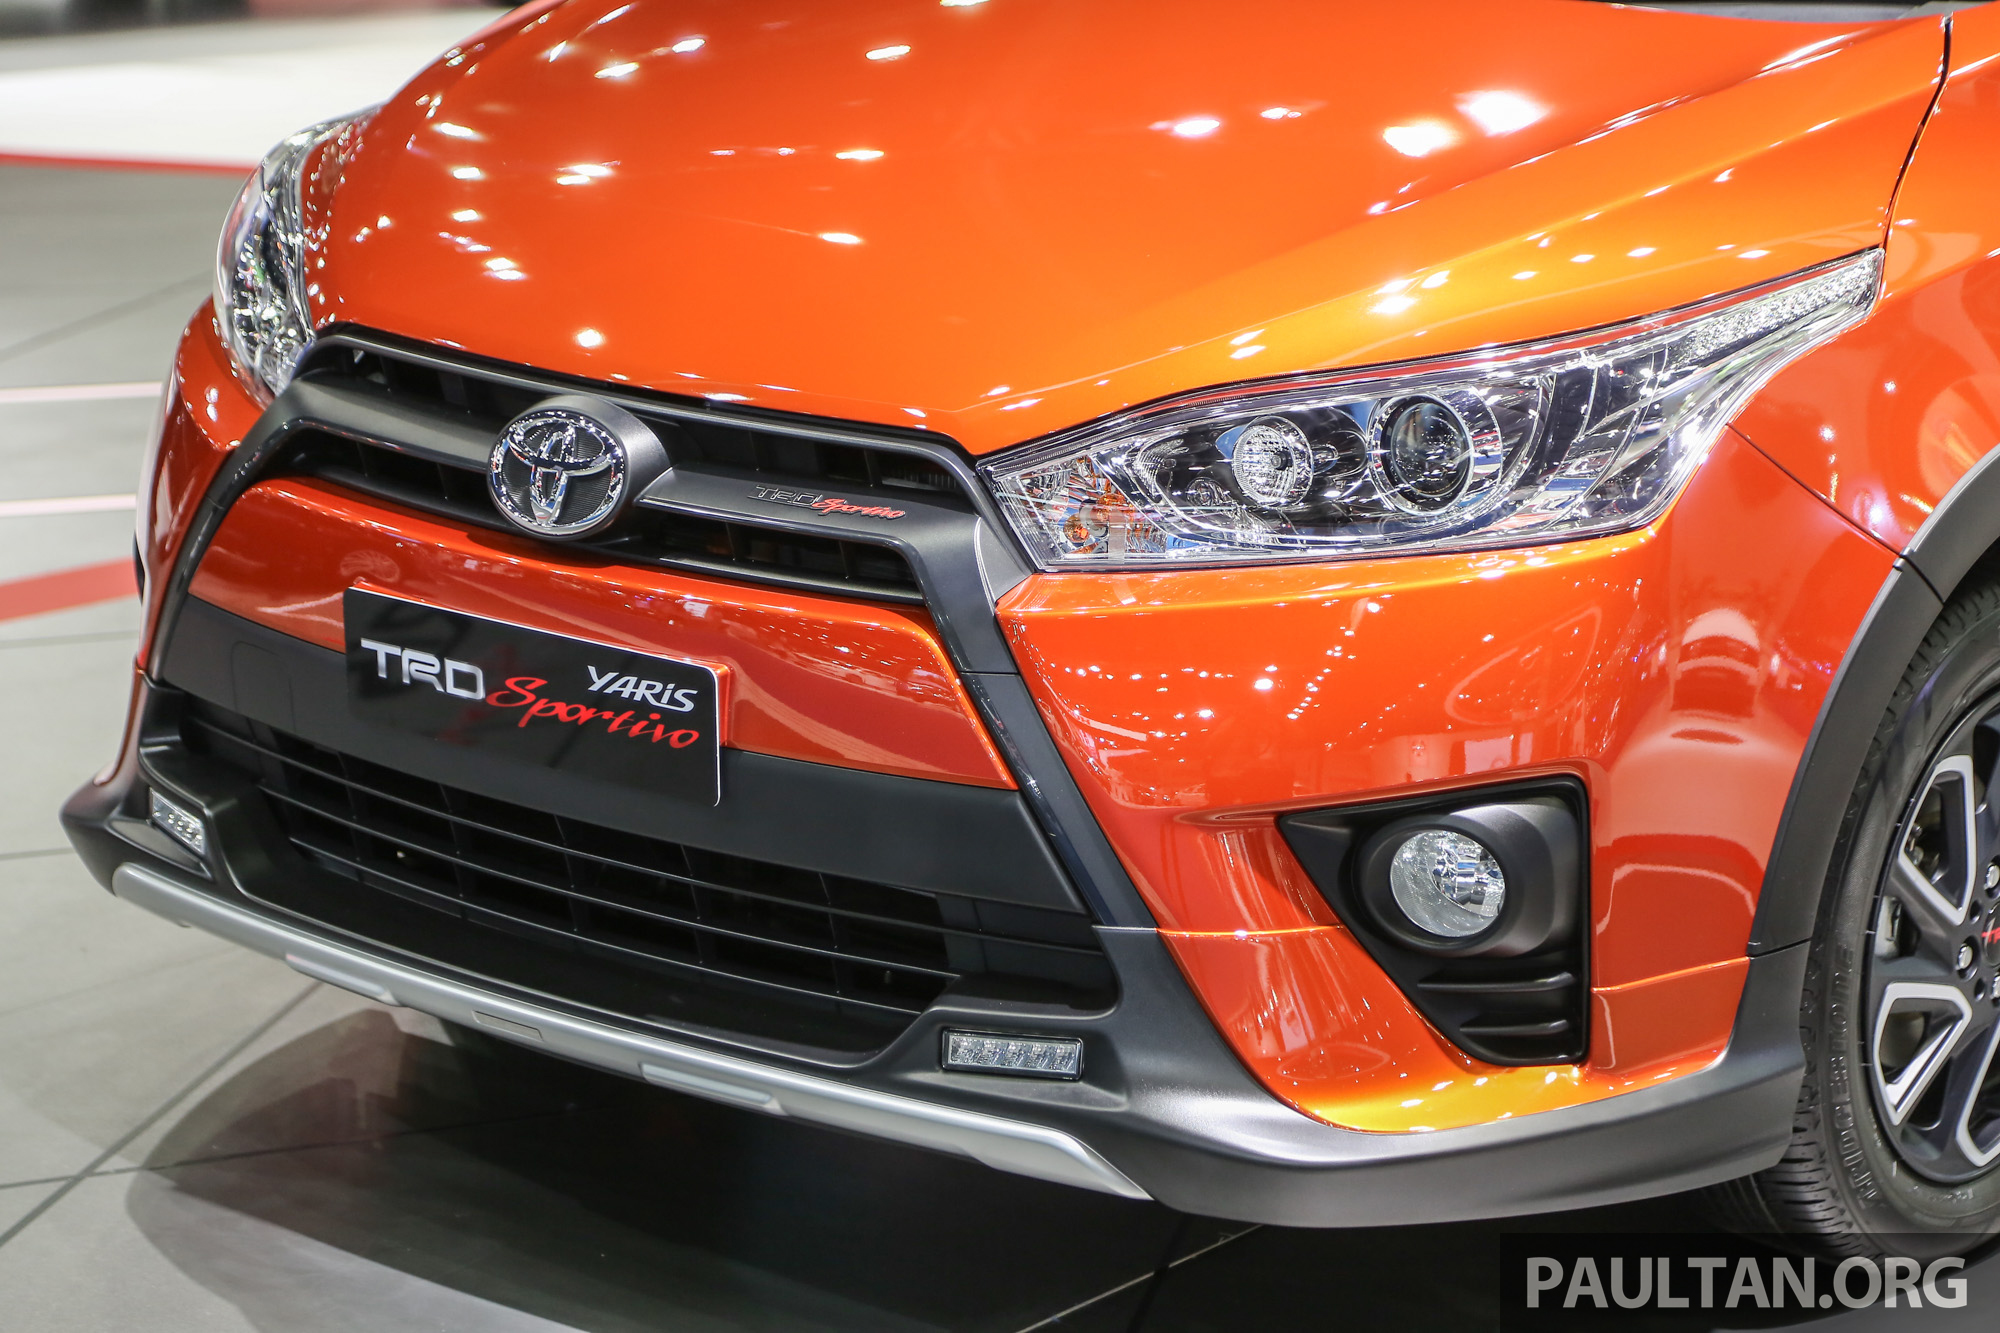 toyota yaris trd all new alphard bandung gallery sportivo at bangkok 2016 paul